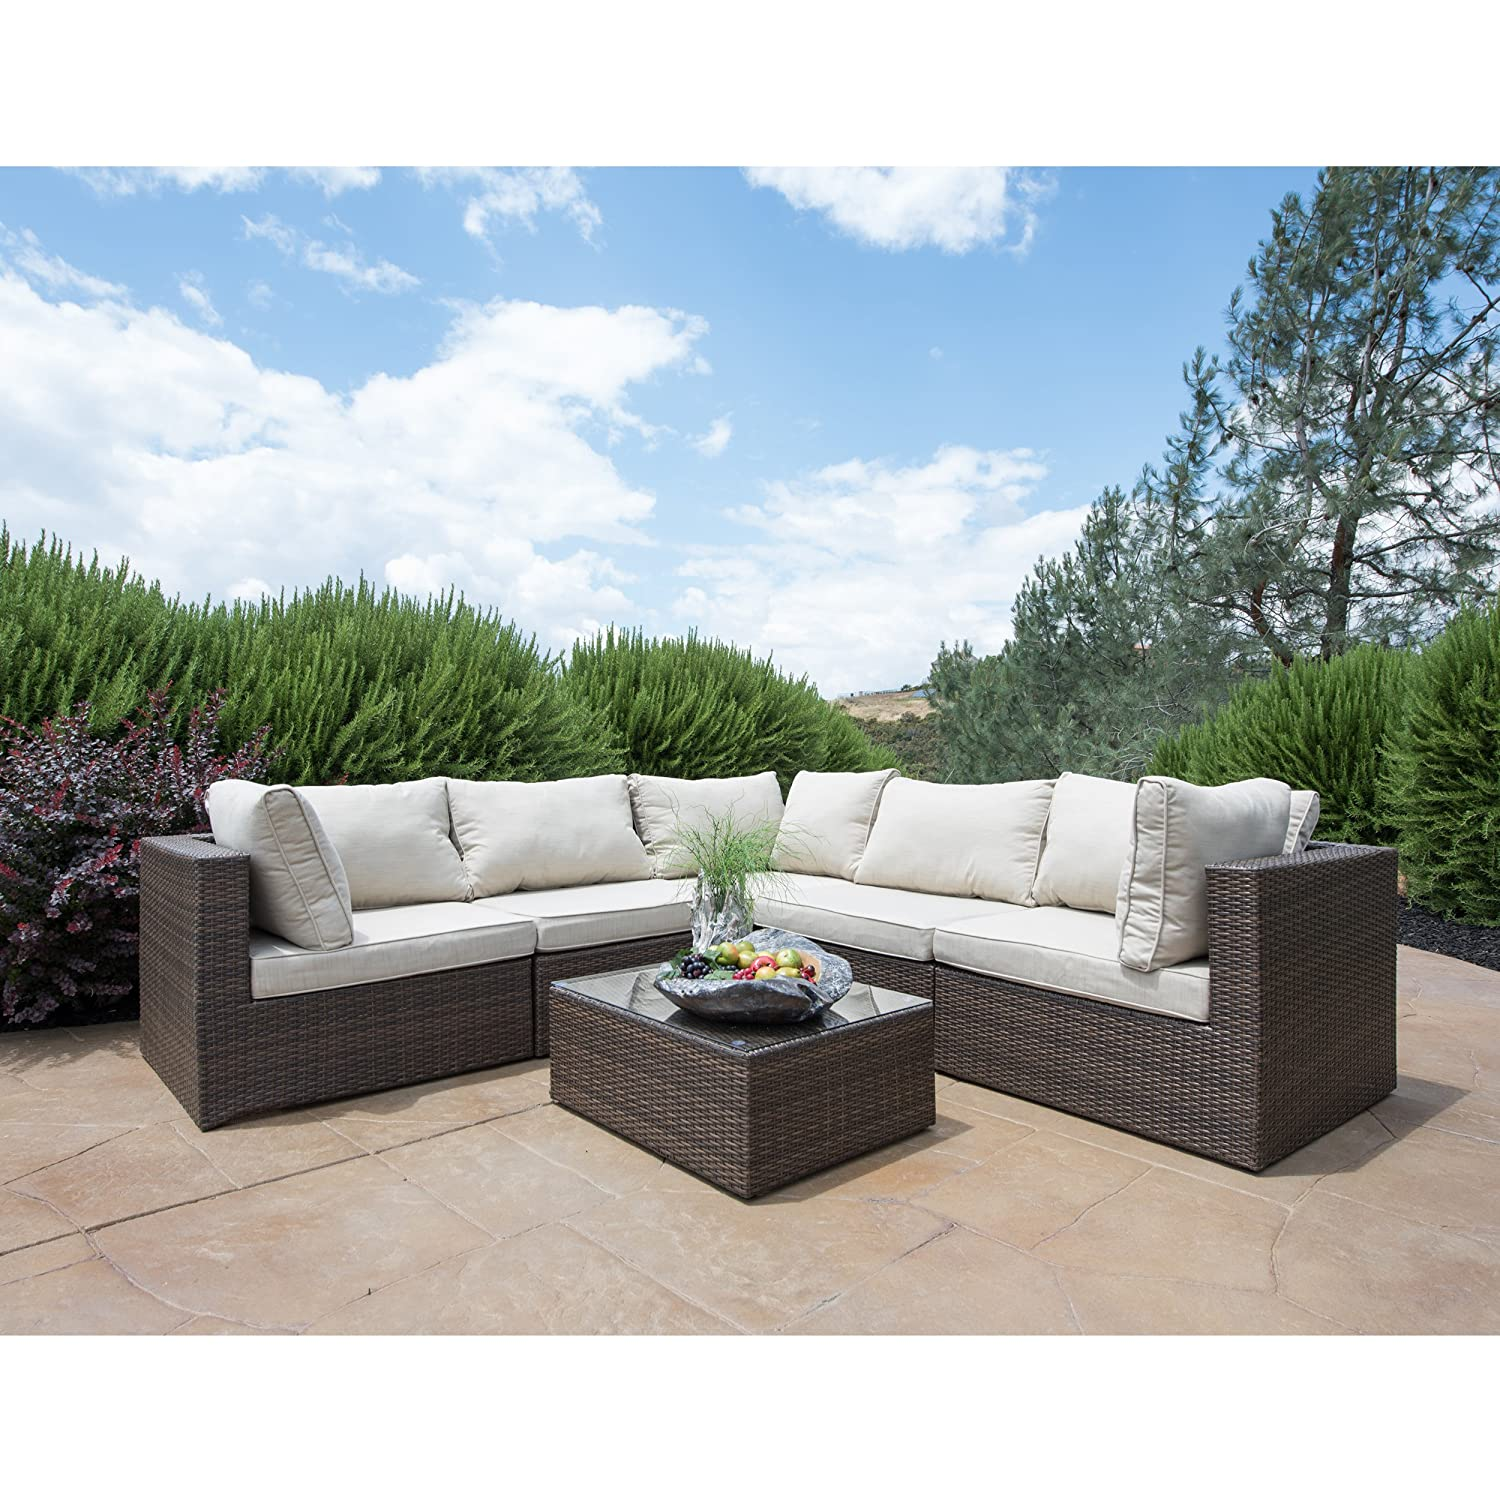 Amazoncom SUPERNOVA Outdoor Patio 6pc Sectional Furniture